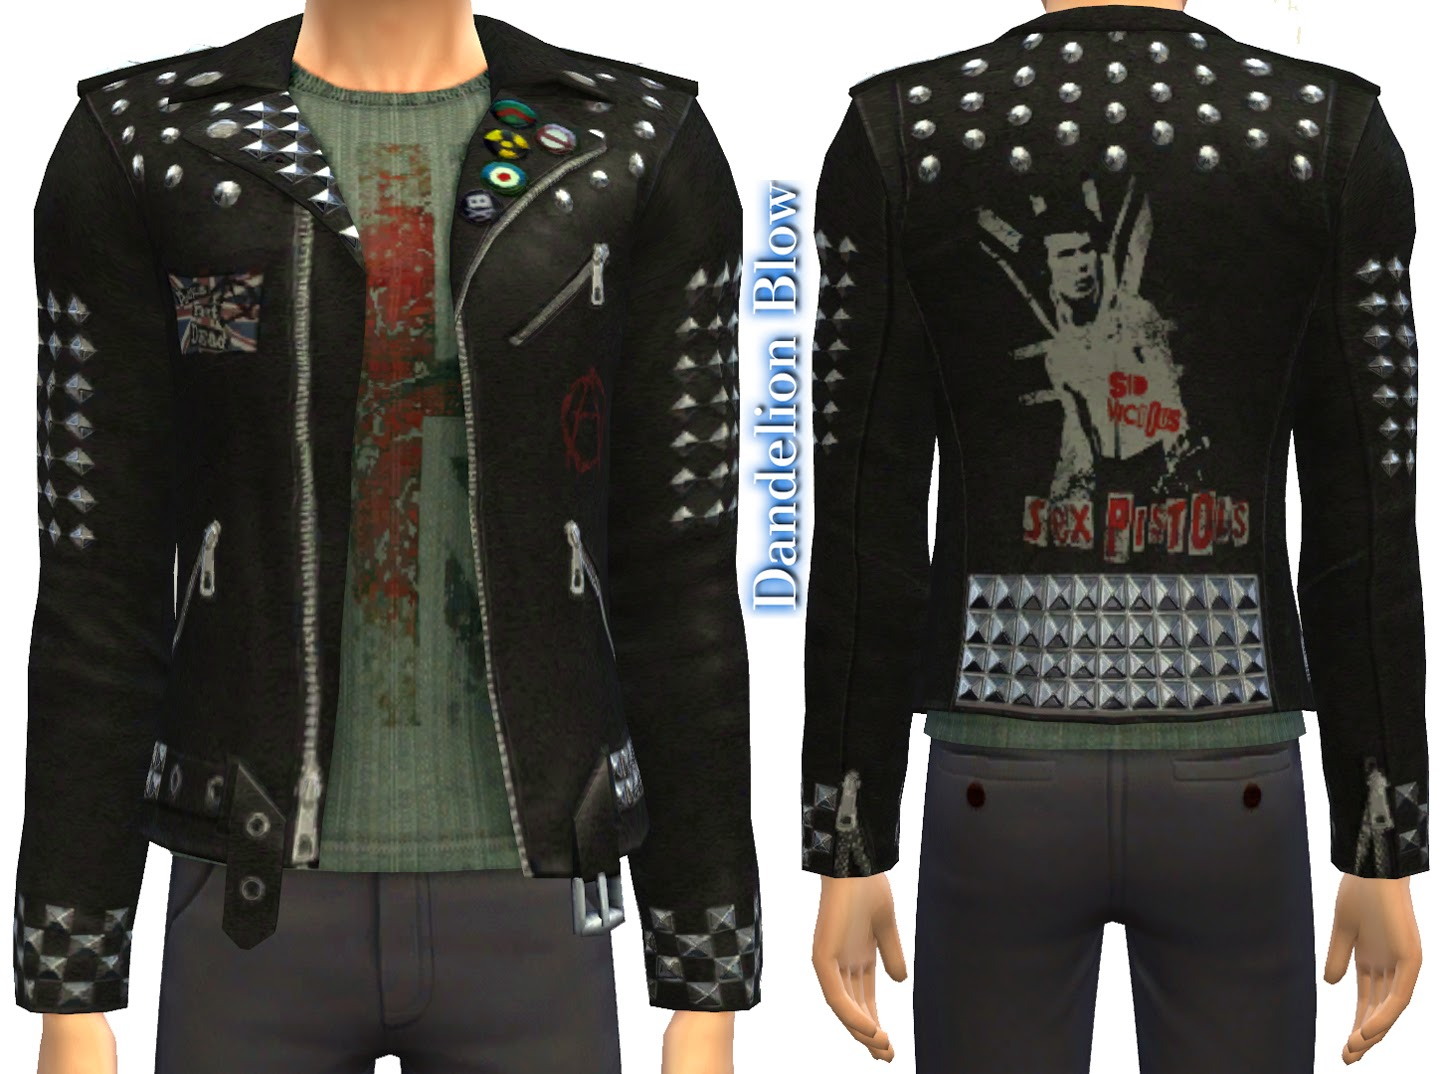 Metallica & Sex Pistols Leather Jackets by DocStone